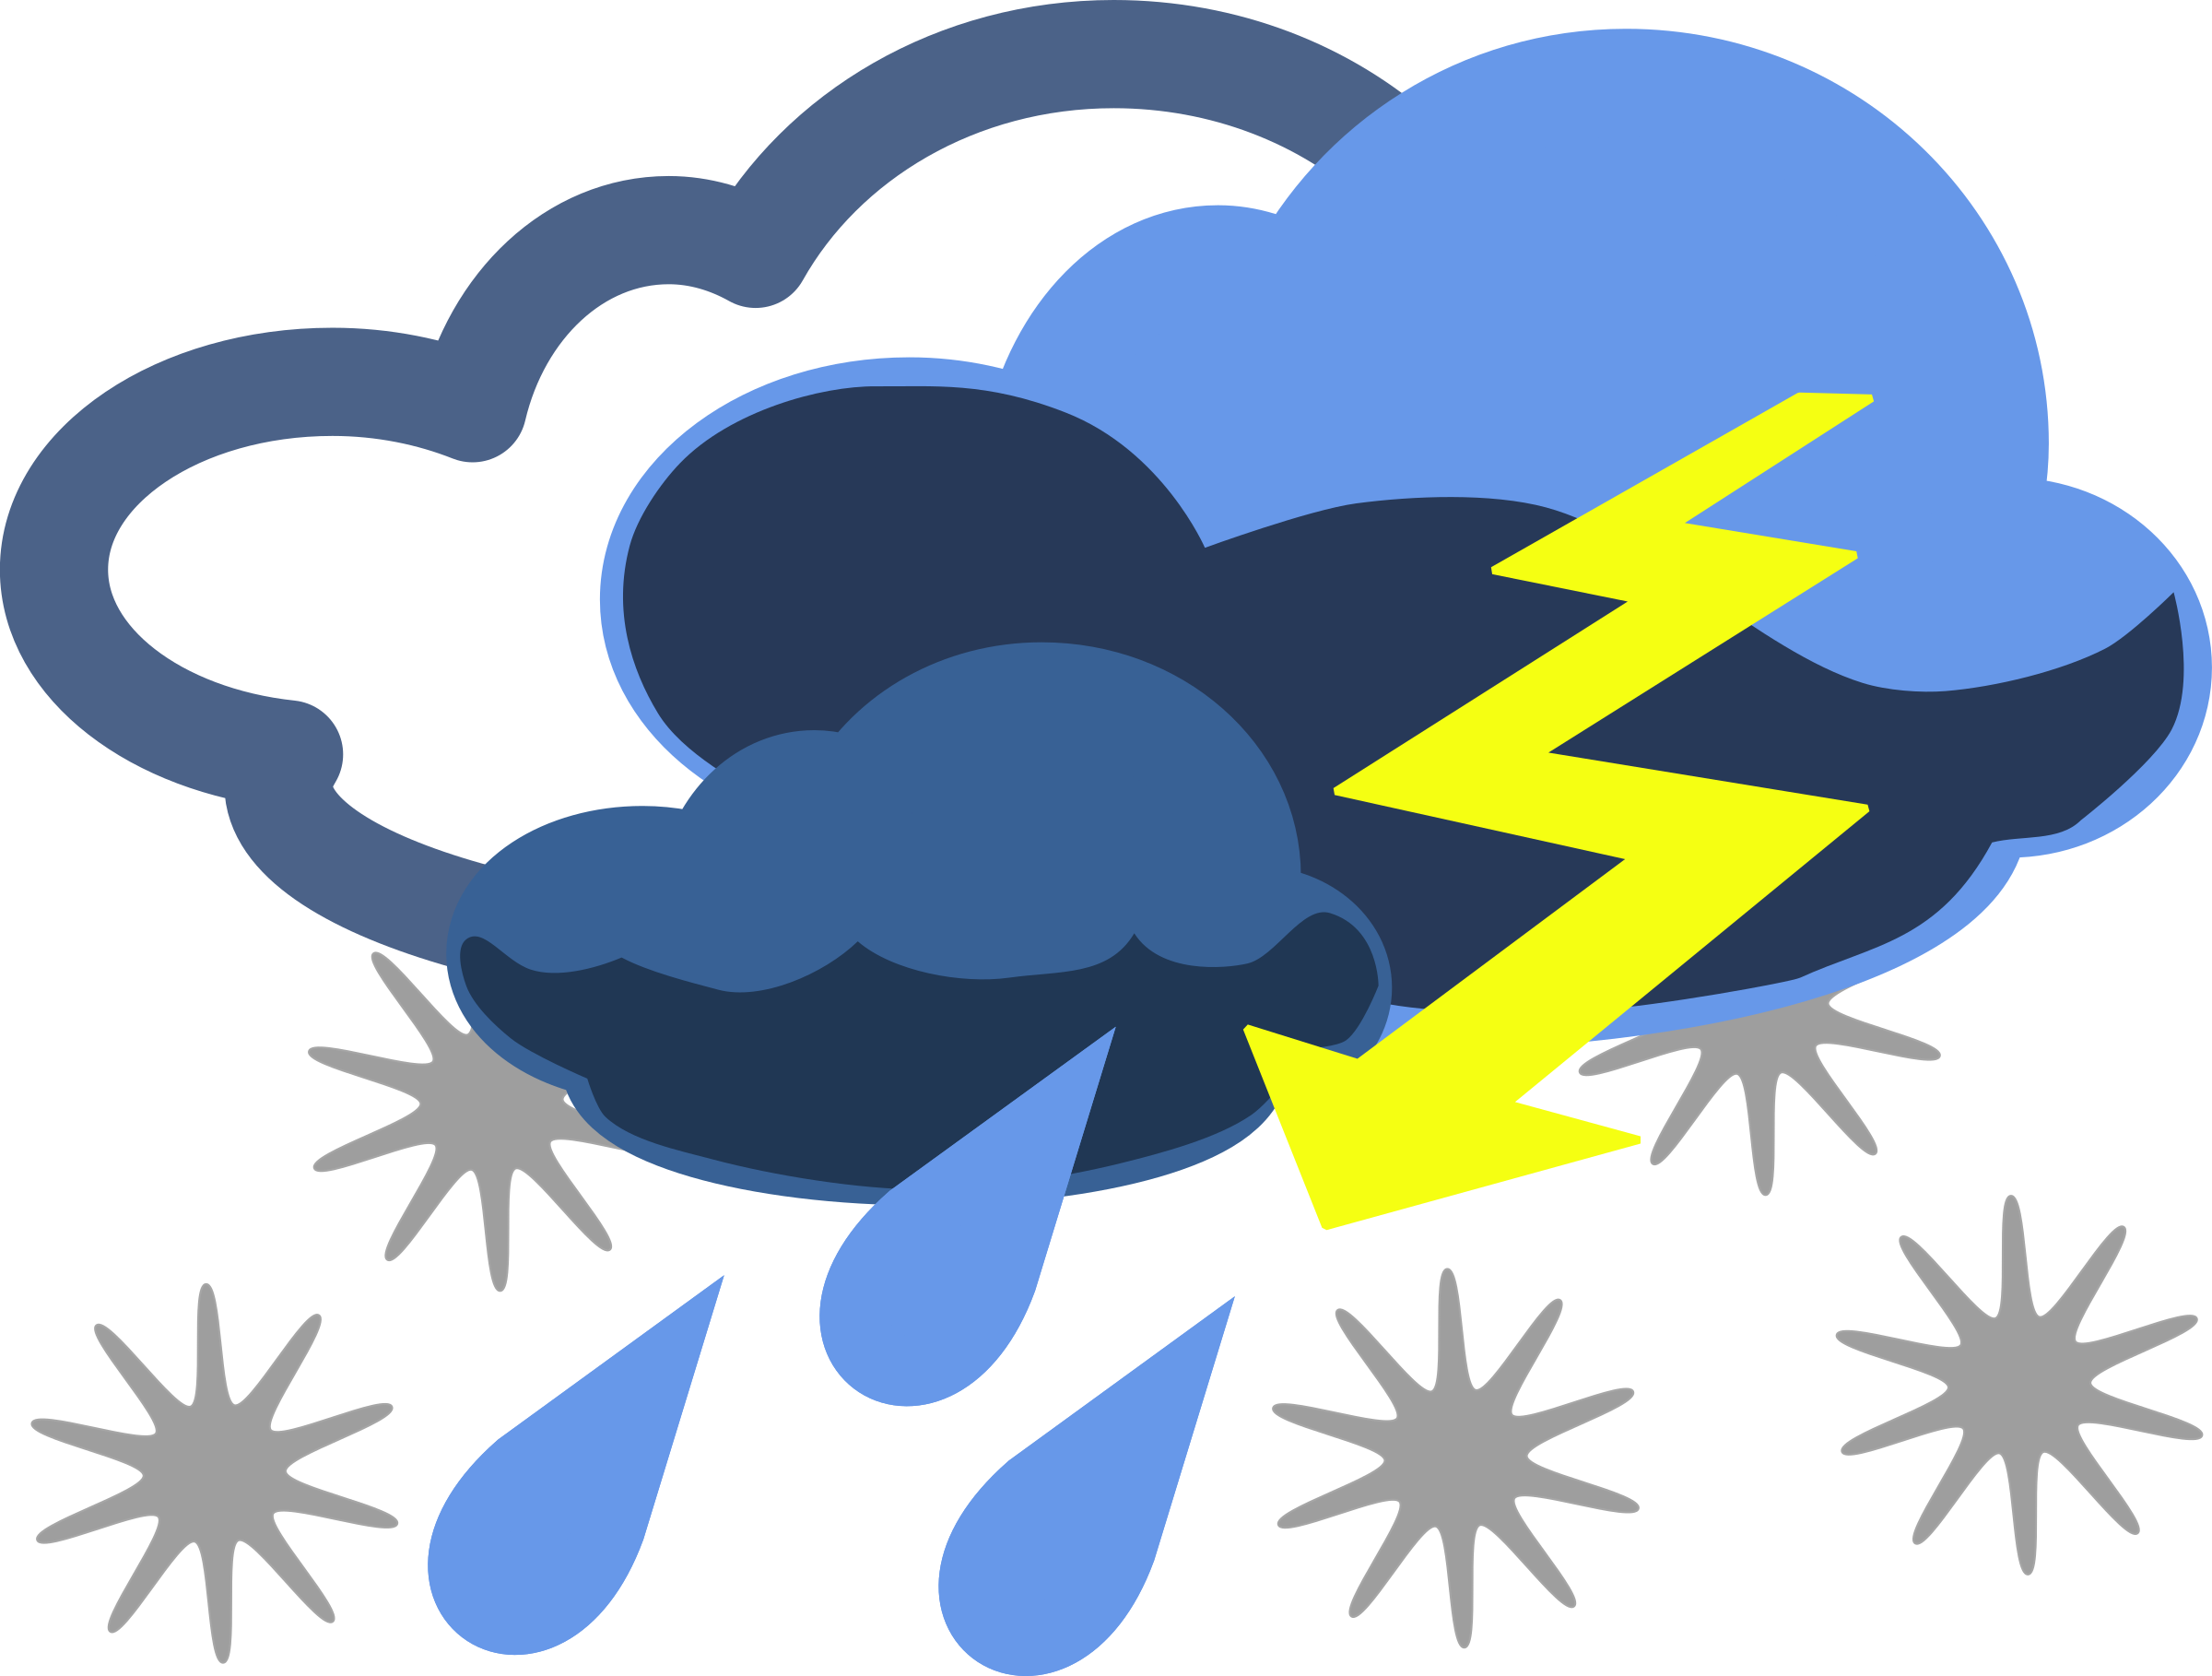 image free stock Weather clipart. Inclement big image png